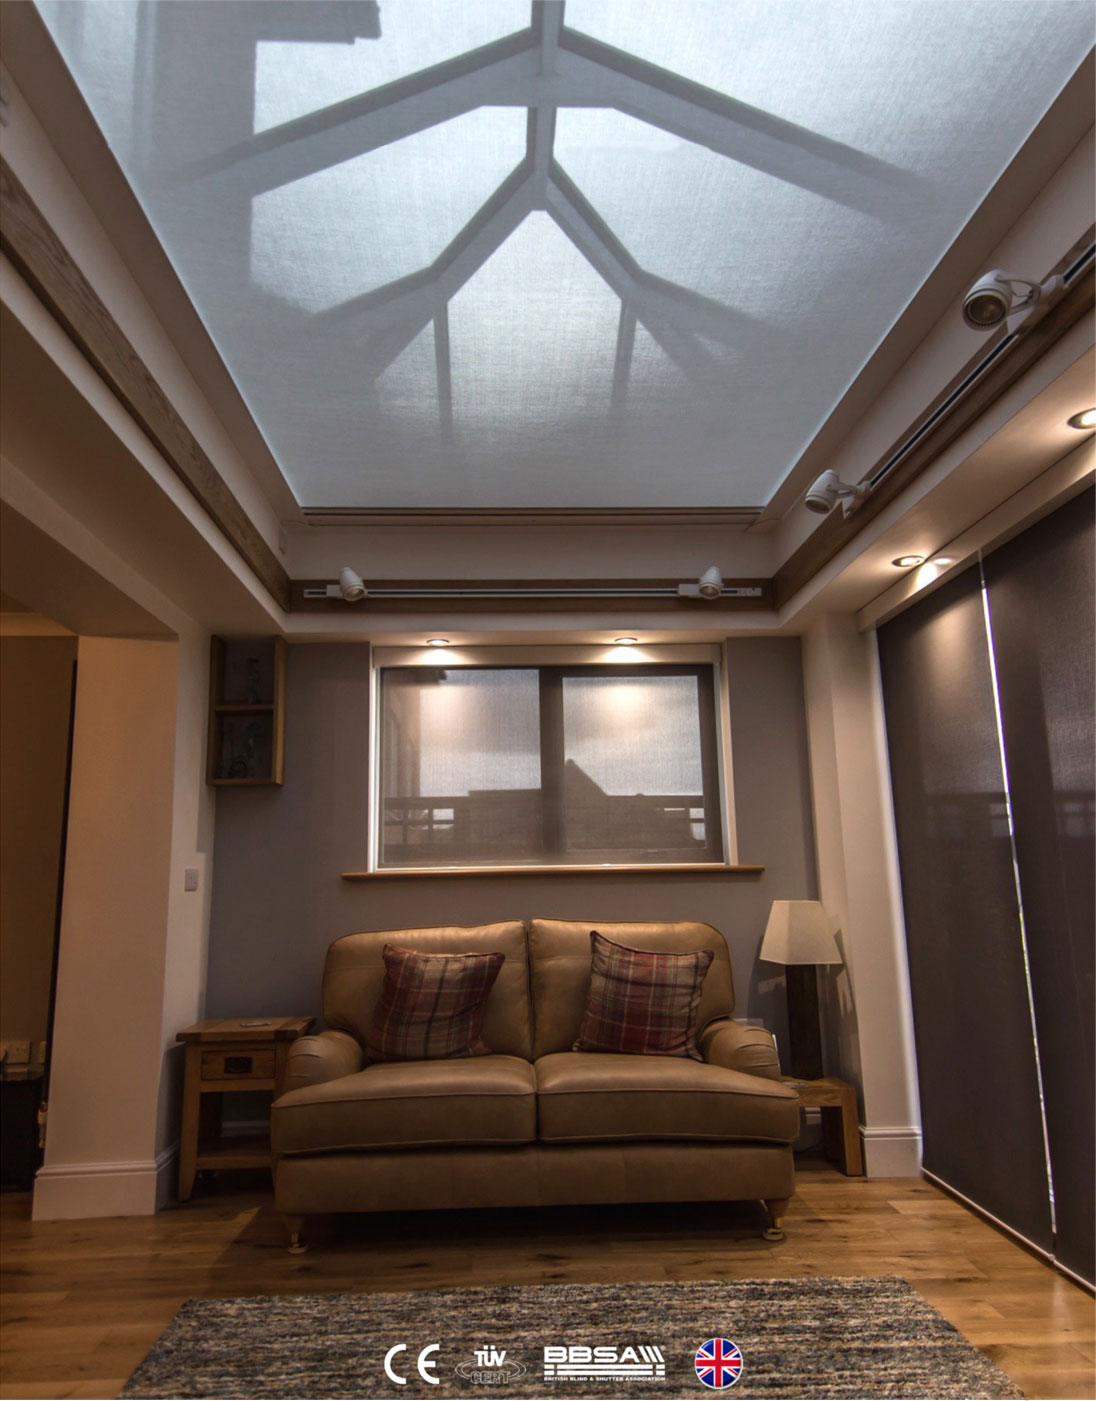 Roof Lantern Blind Anti-Glare Fabric